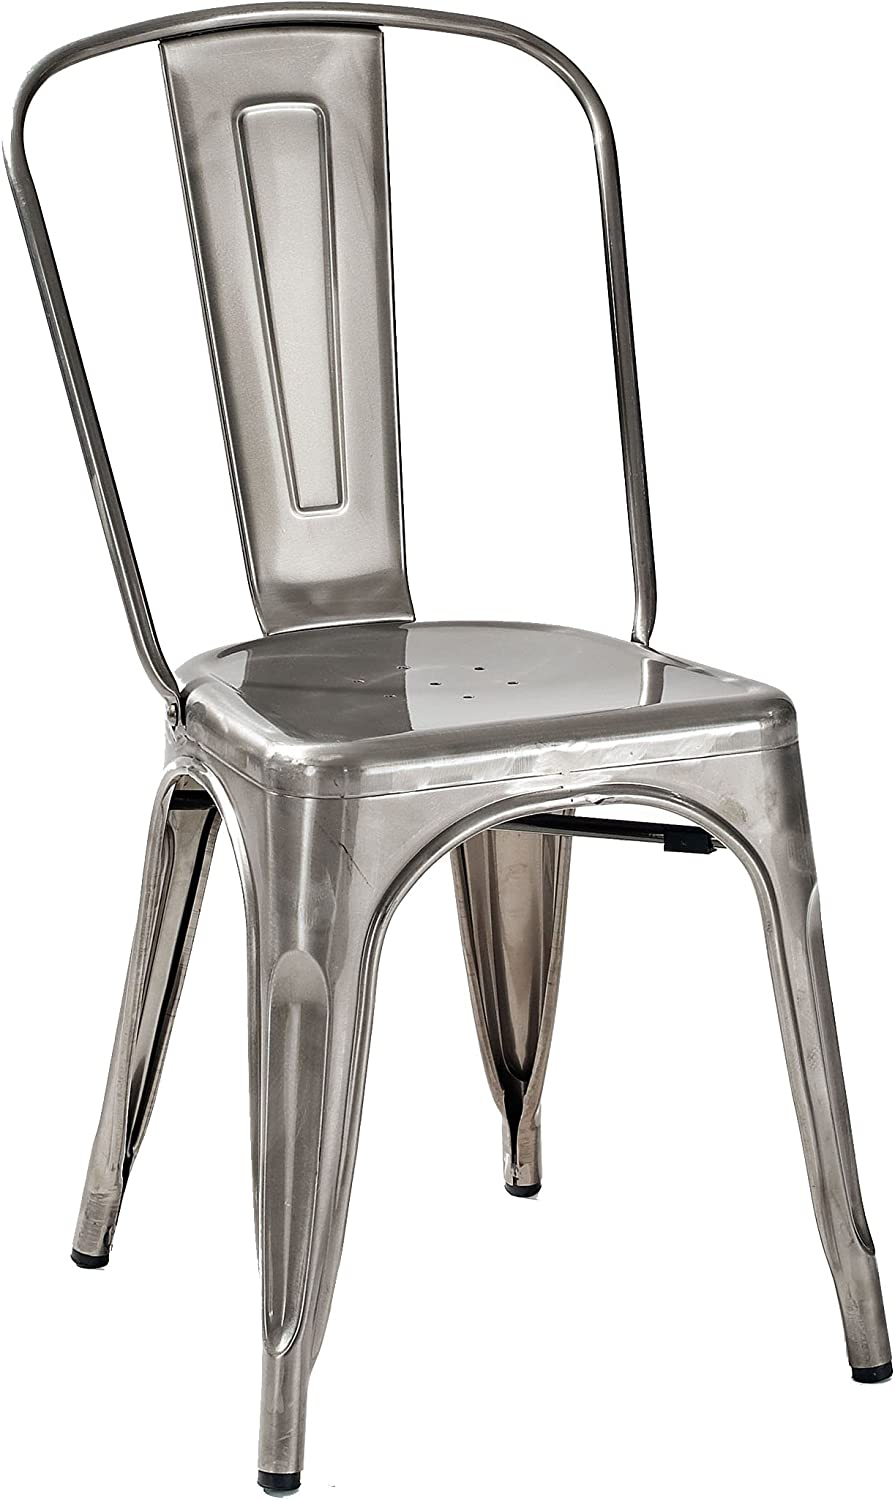 Crosley Furniture Amelia Metal Cafe Chair in Galvanized (set of 2)